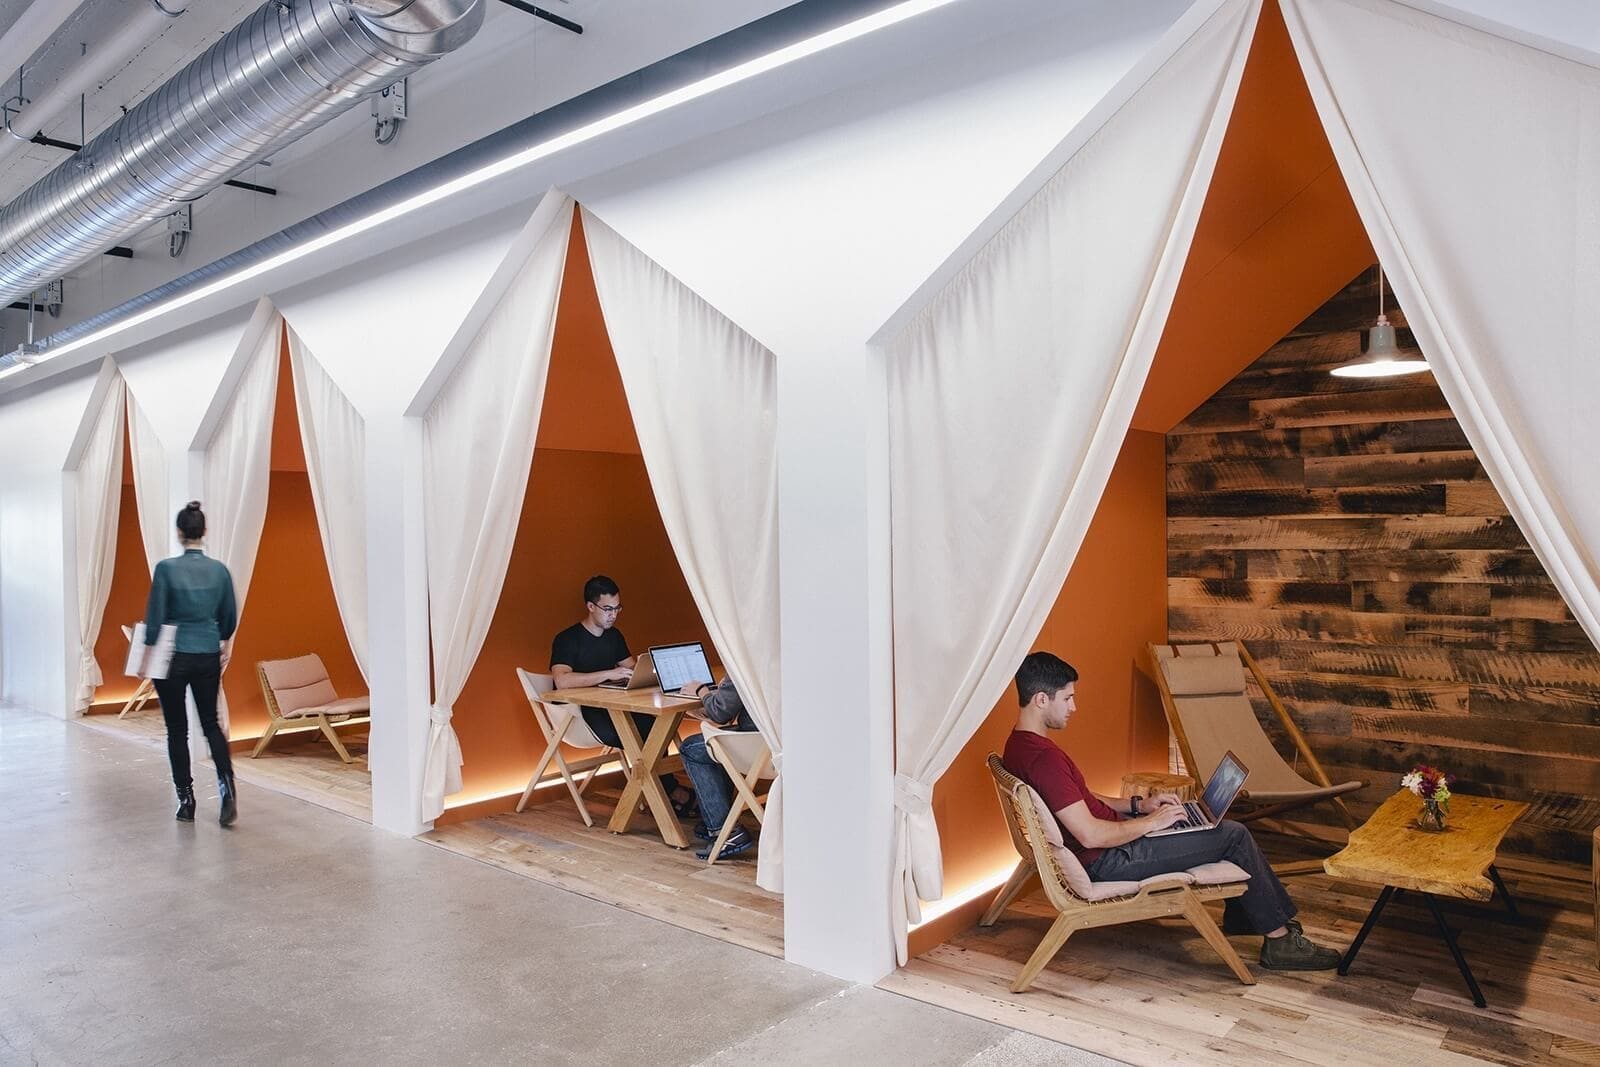 Coolest-Workplace-Environments-Air-BNB-03